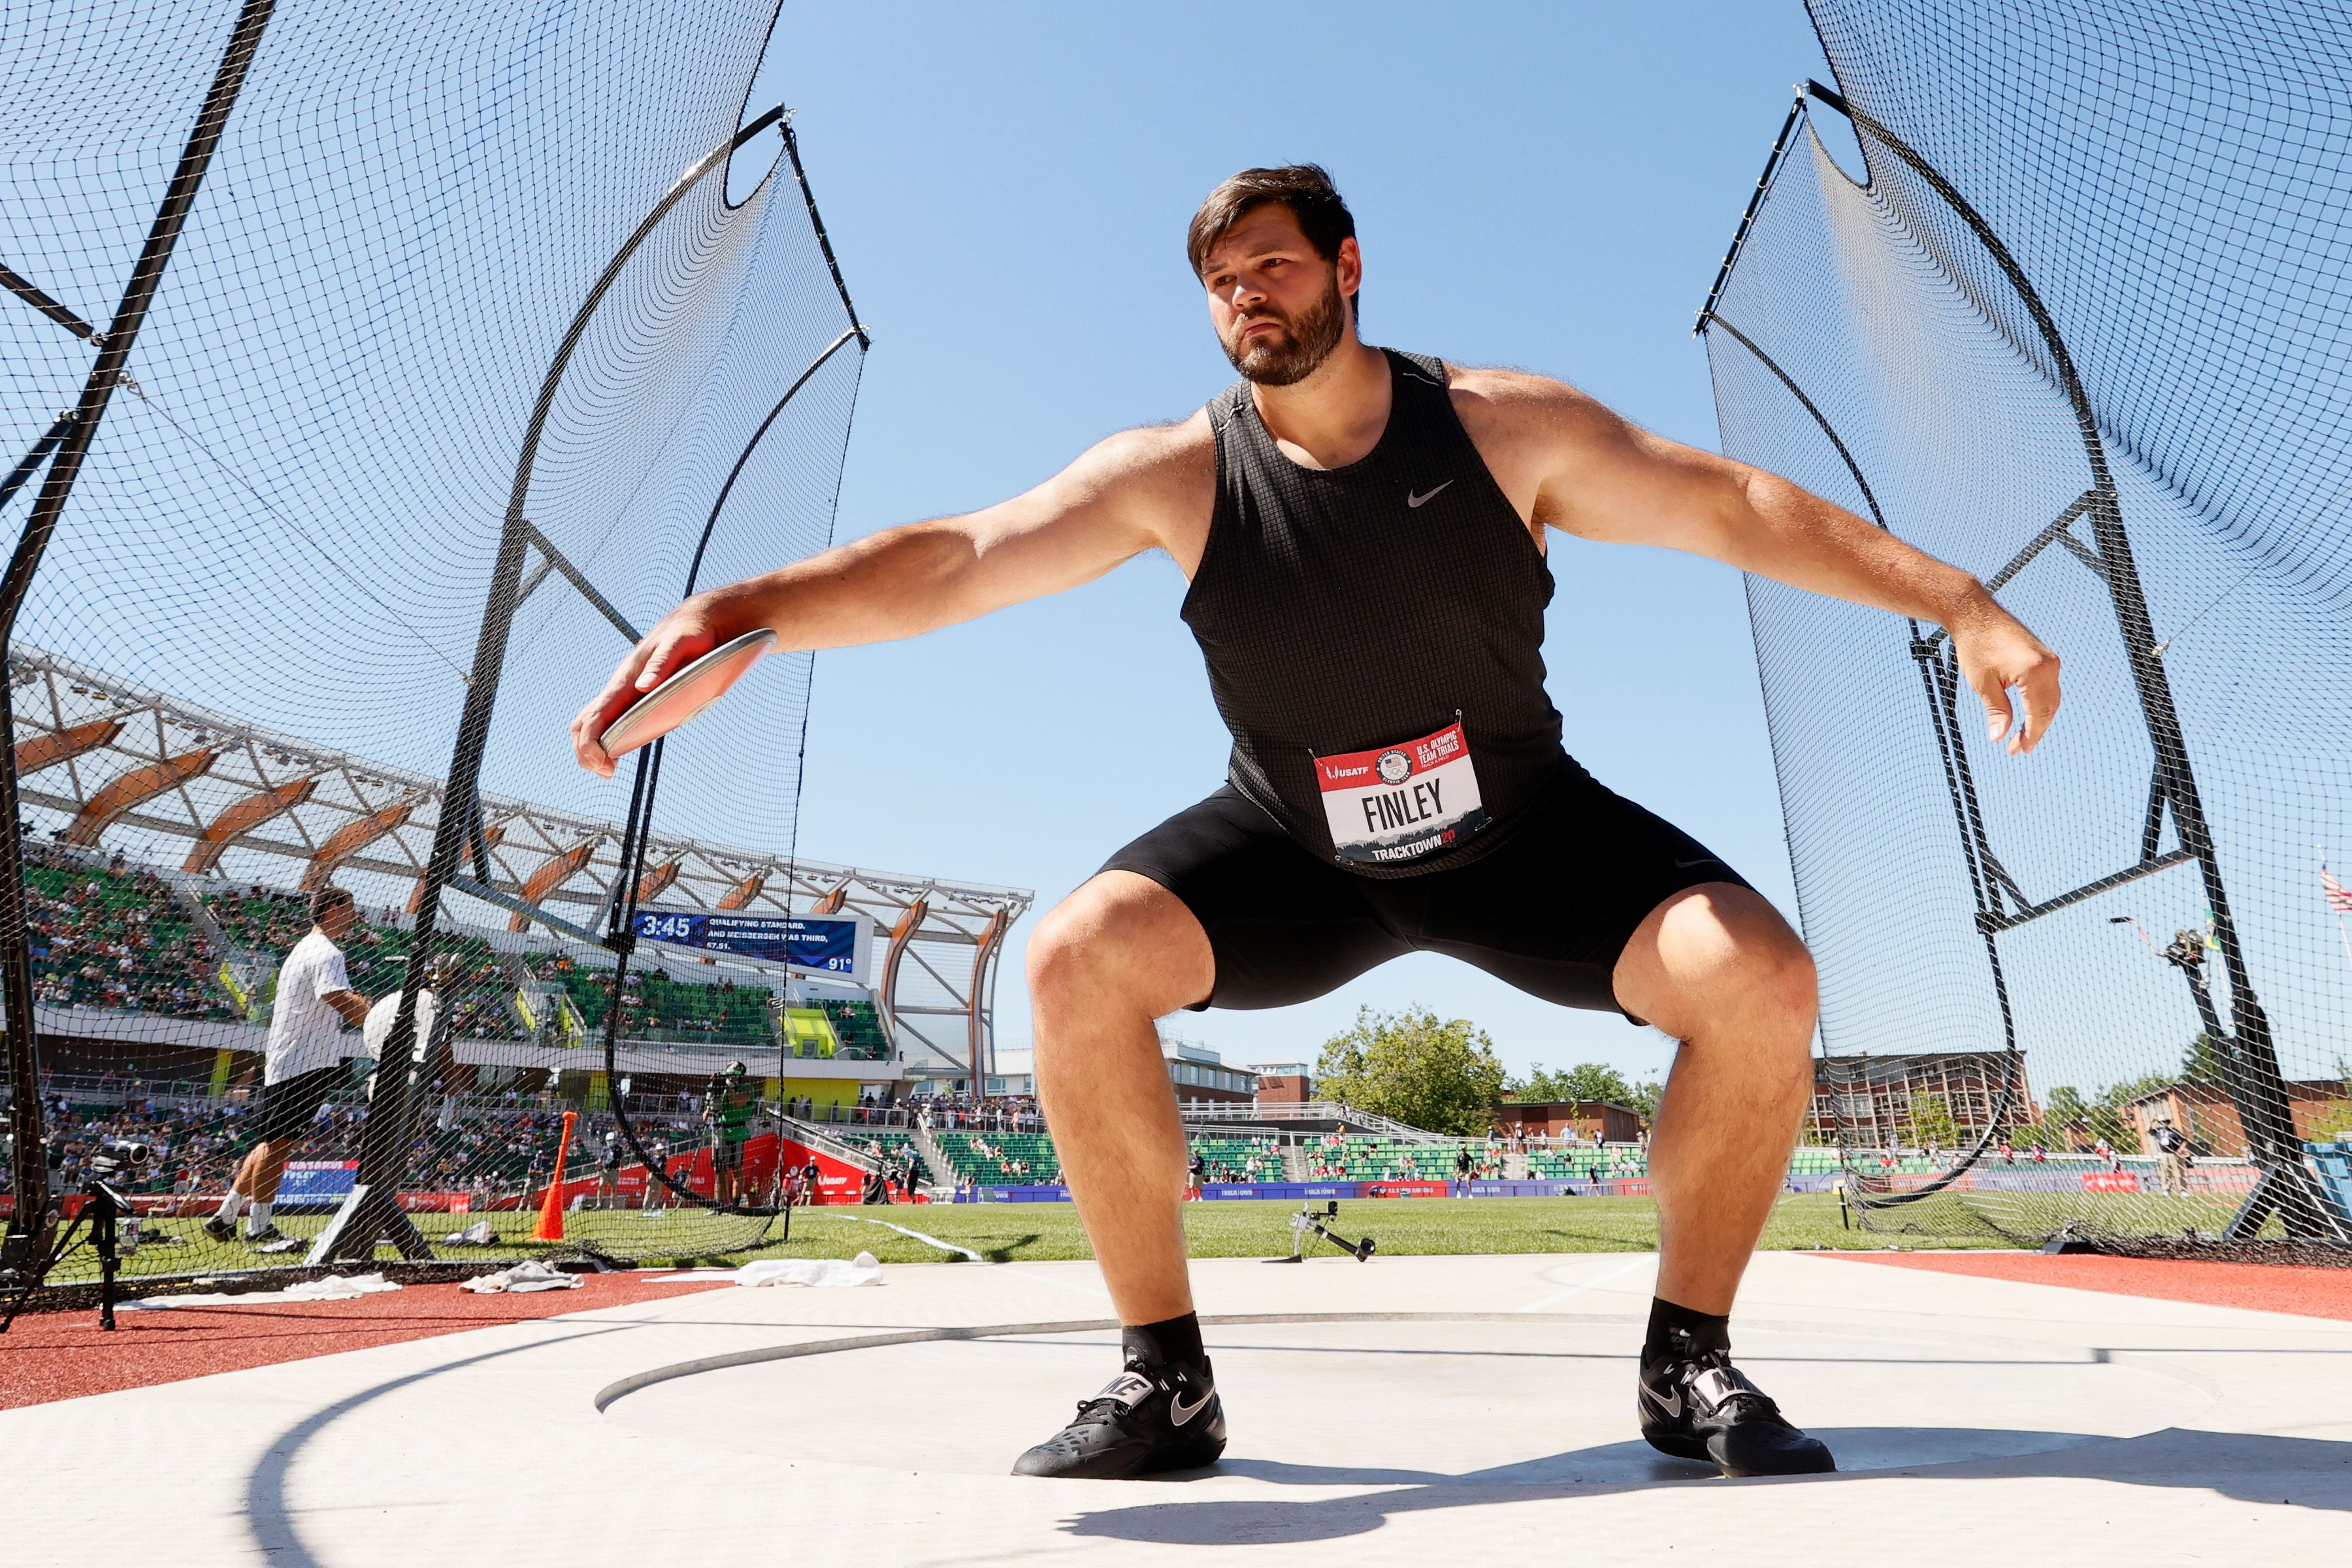 Mason Finley competes in the discus throw at the U.S. team trials in June. Photo: Andy Lyons/Getty Images